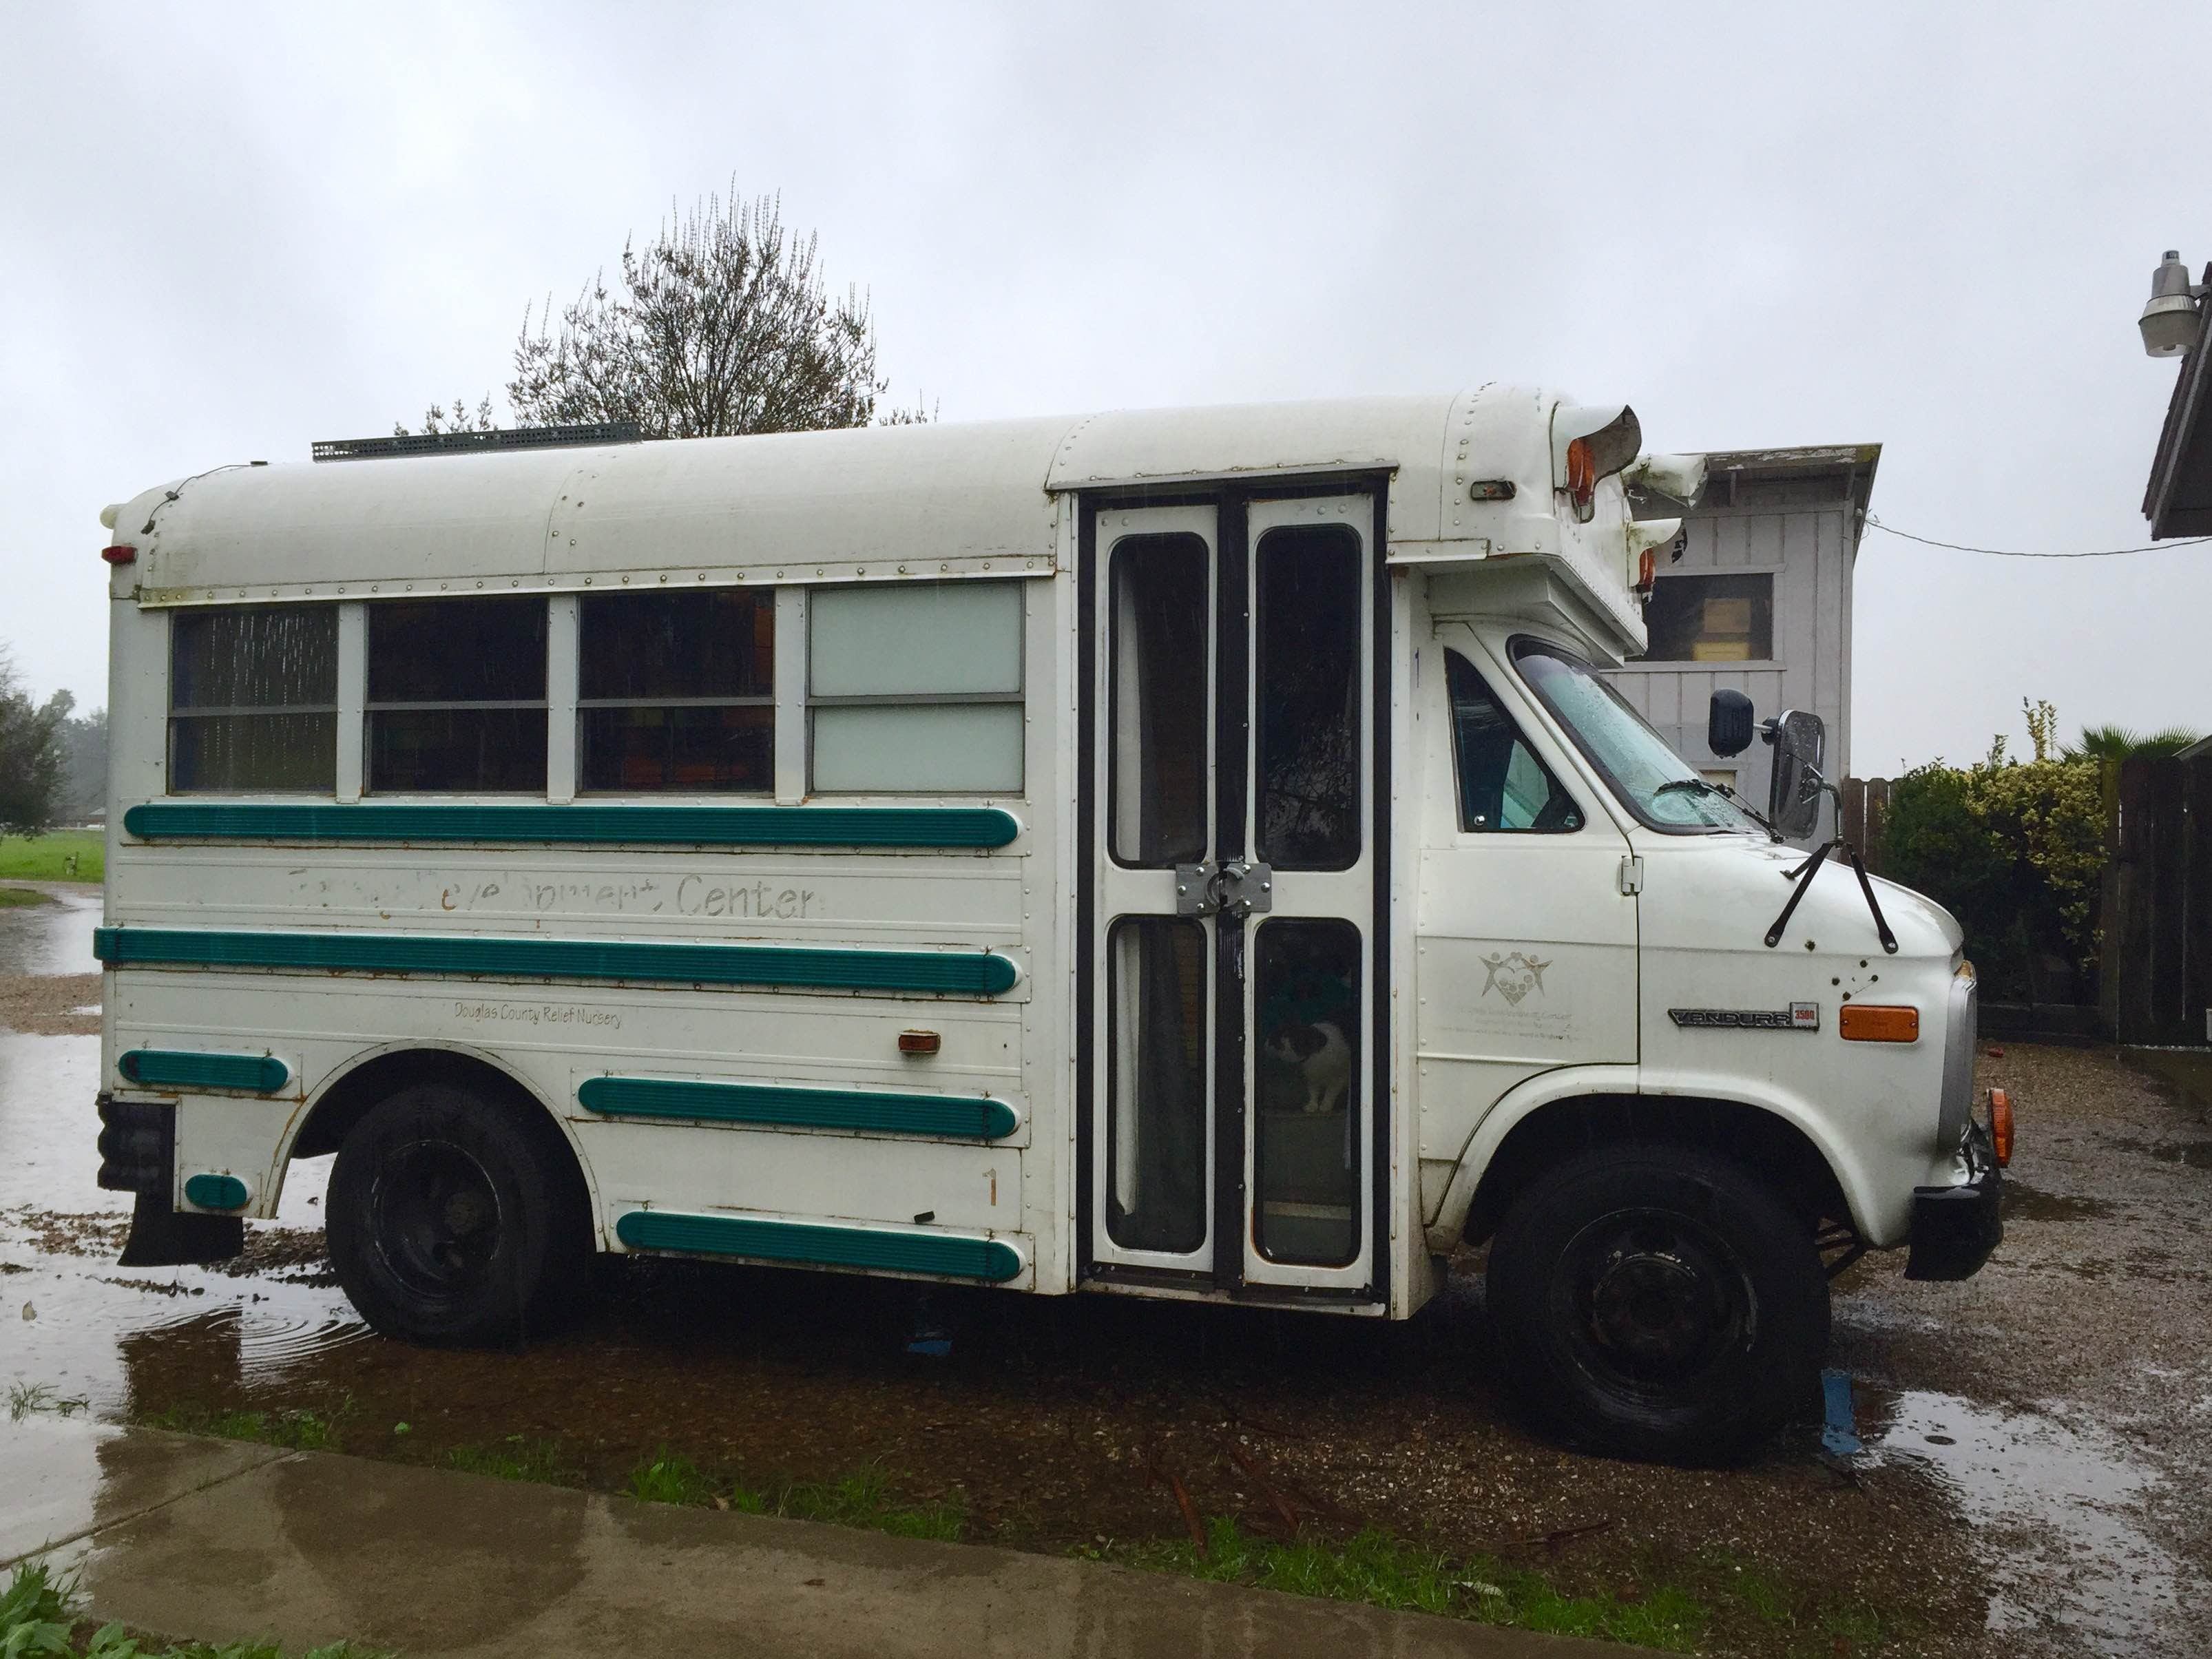 Skoolie sound is the combination of location sound recordist alison grayson and her 1990 gmc vandura mini school bus conversion bessie the land cow